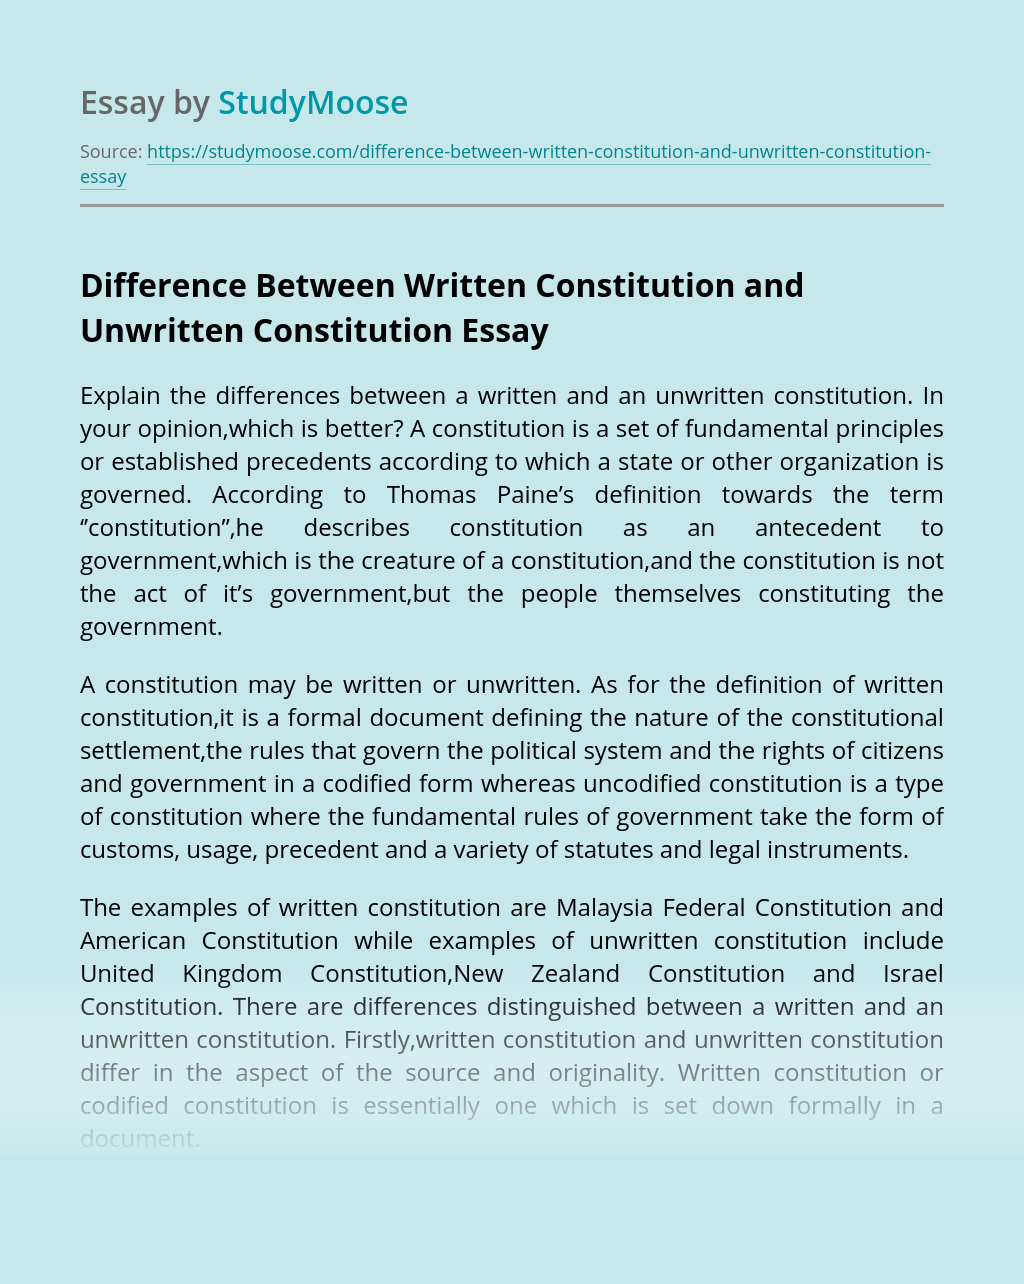 Difference Between Written Constitution and Unwritten Constitution